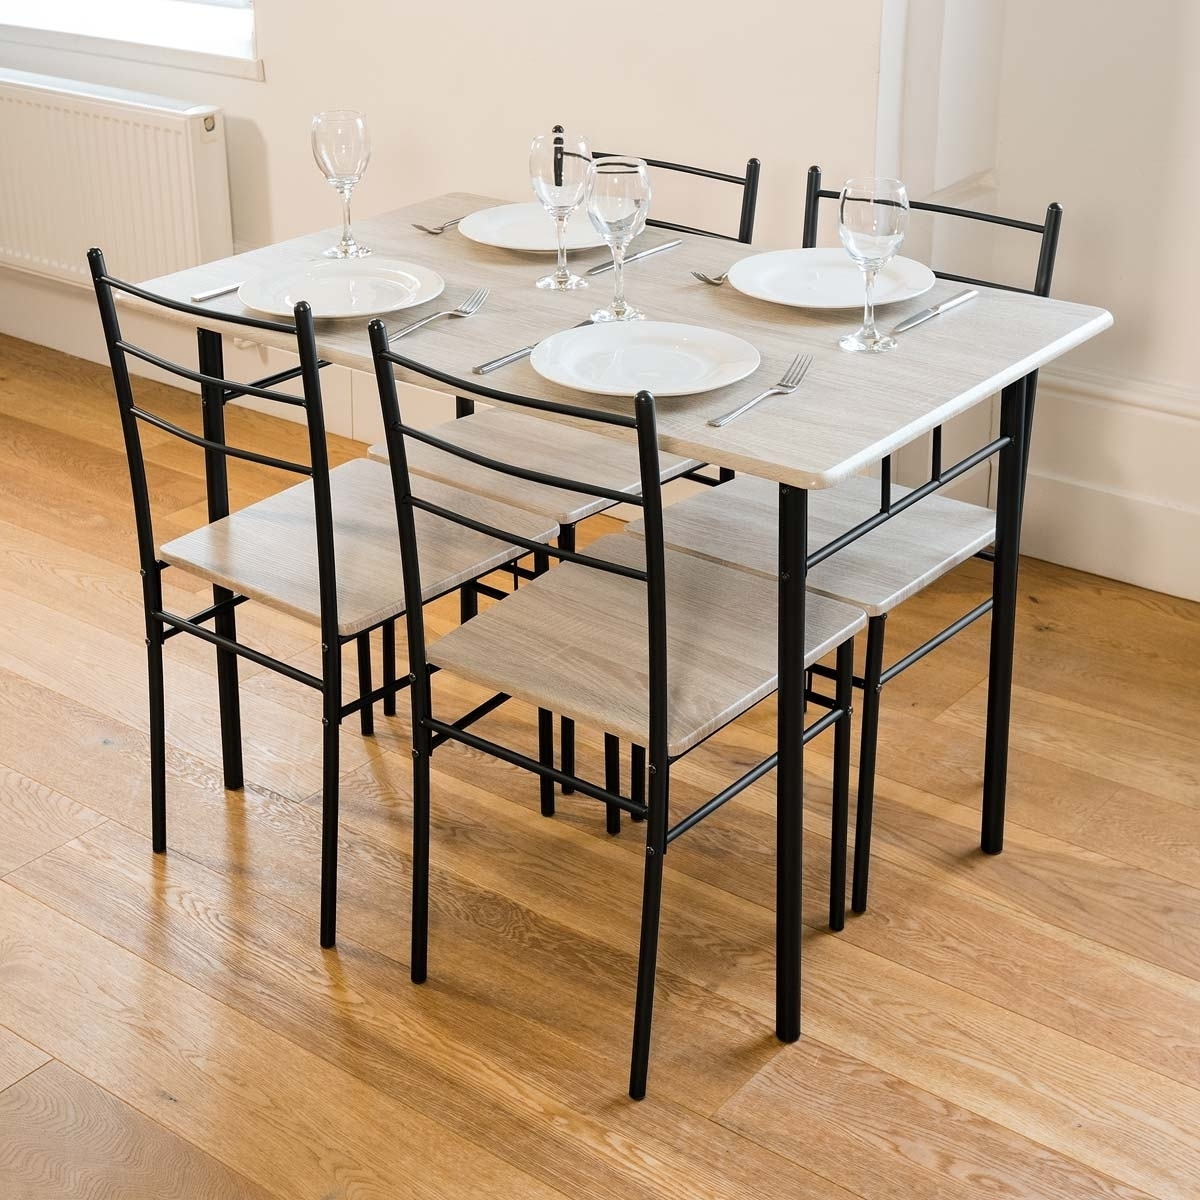 5 Piece Modern Dining Table And 4 Chairs Set Textured Wood Effect Regarding Most Up To Date Modern Dining Sets (Gallery 22 of 25)